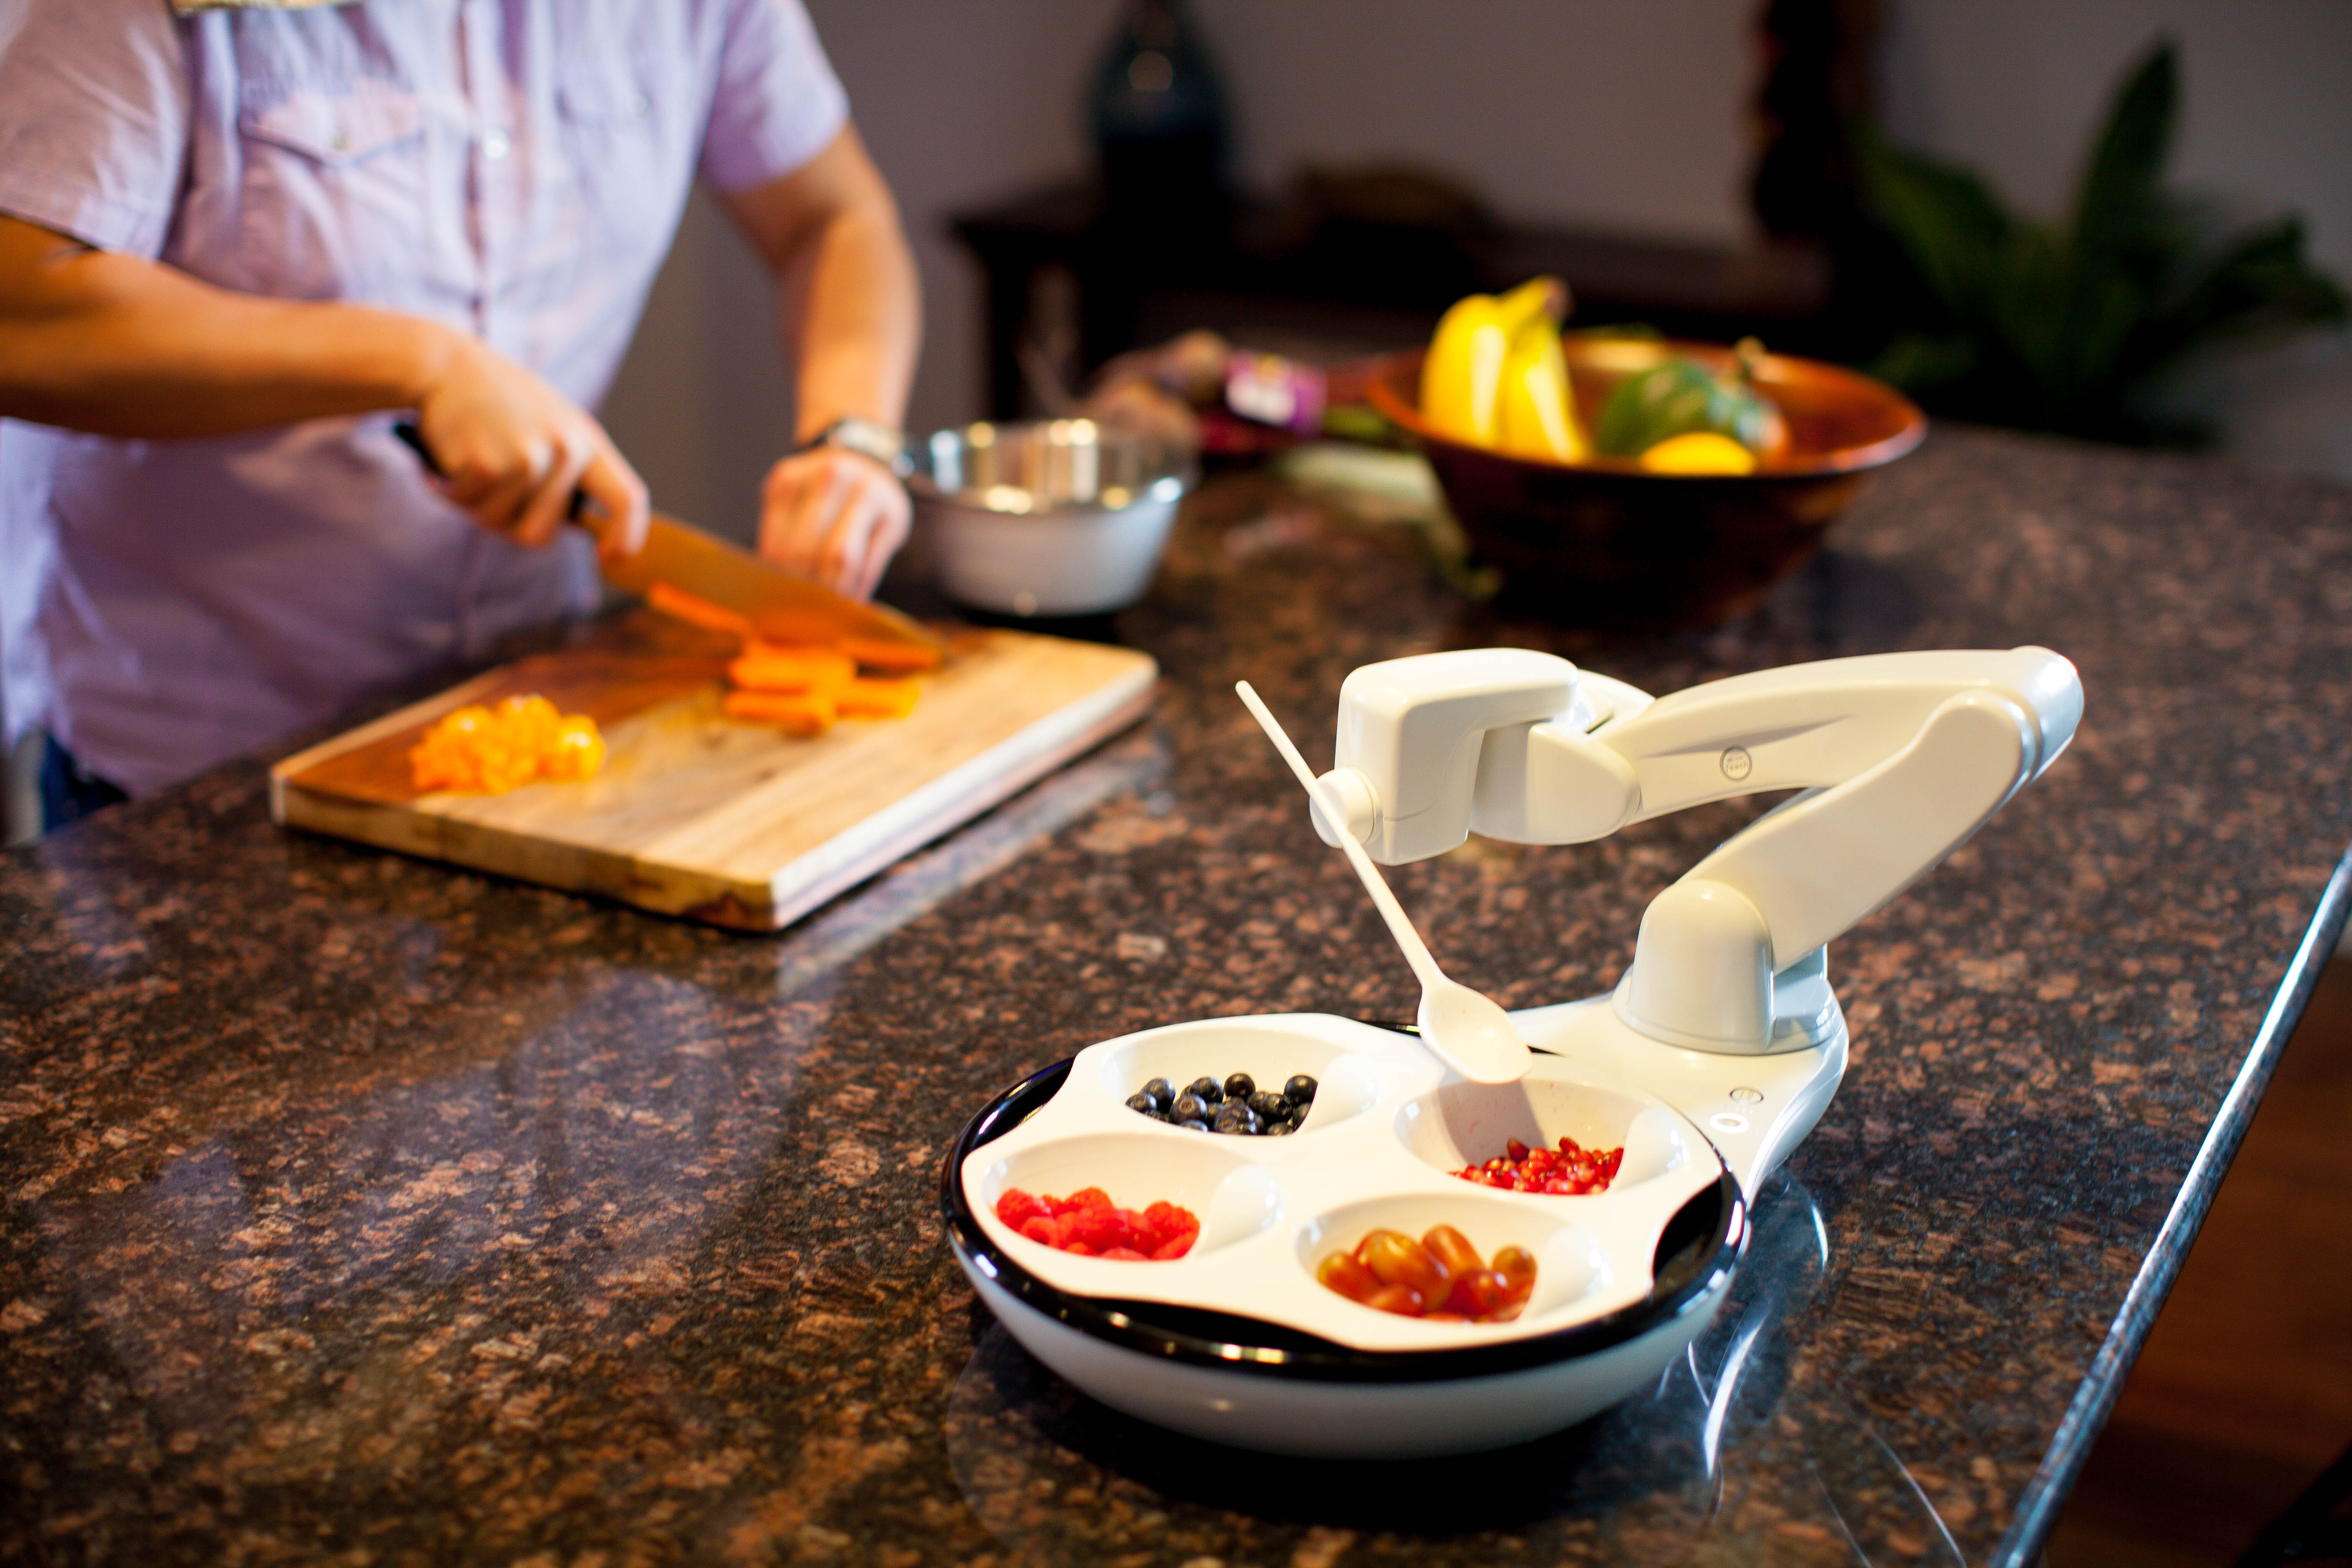 The Obi is a revolutionary, robotic feeding device that is simple to use